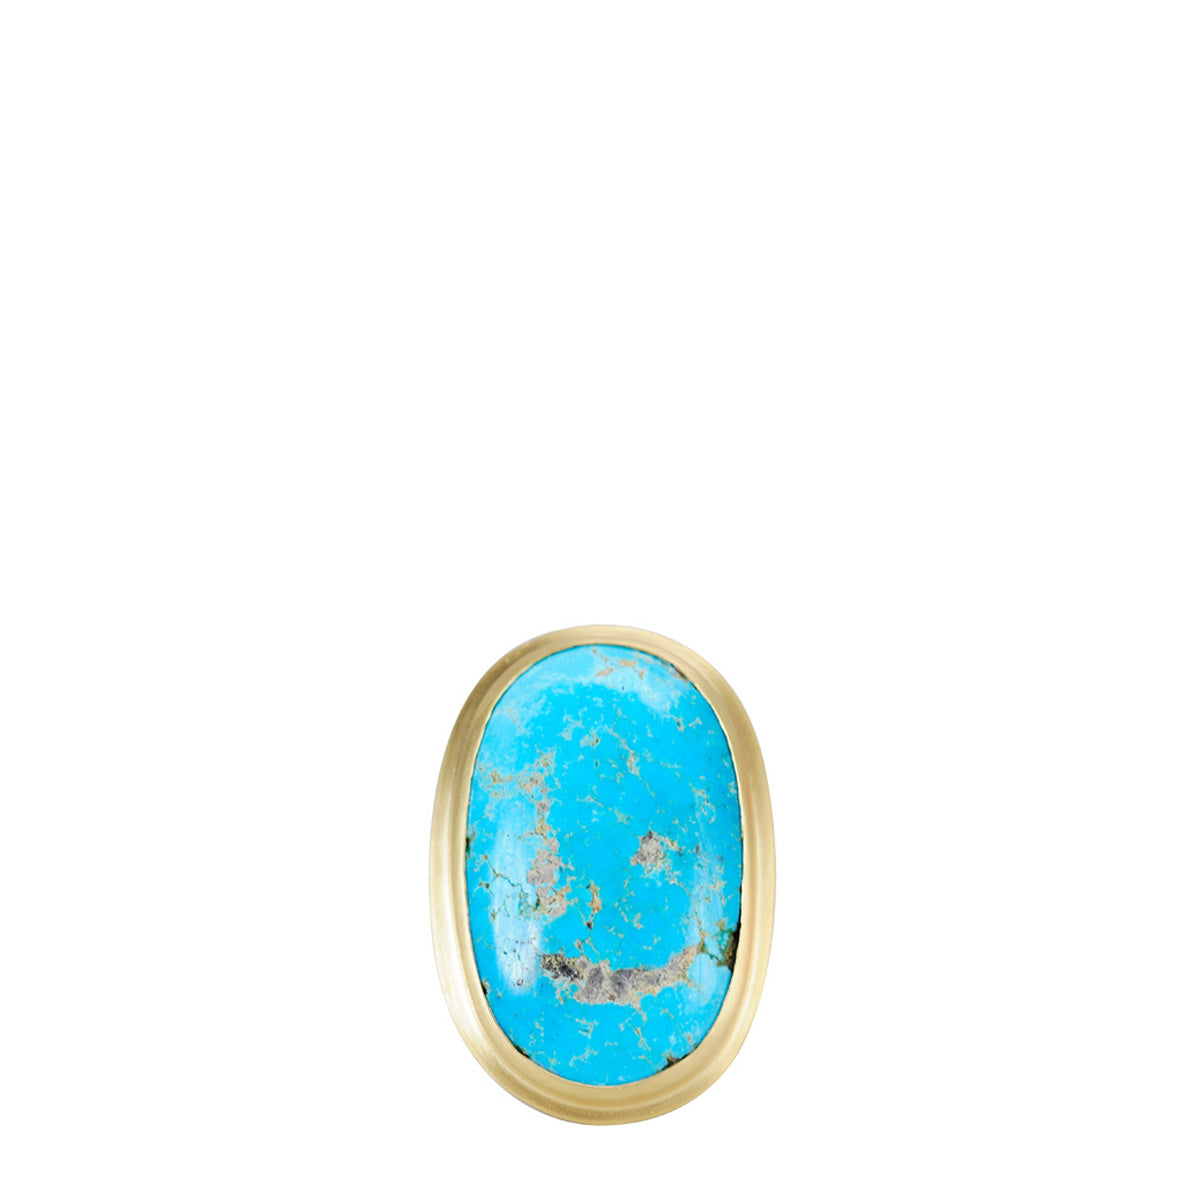 18K Gold Large Oval Persian Turquoise Ring